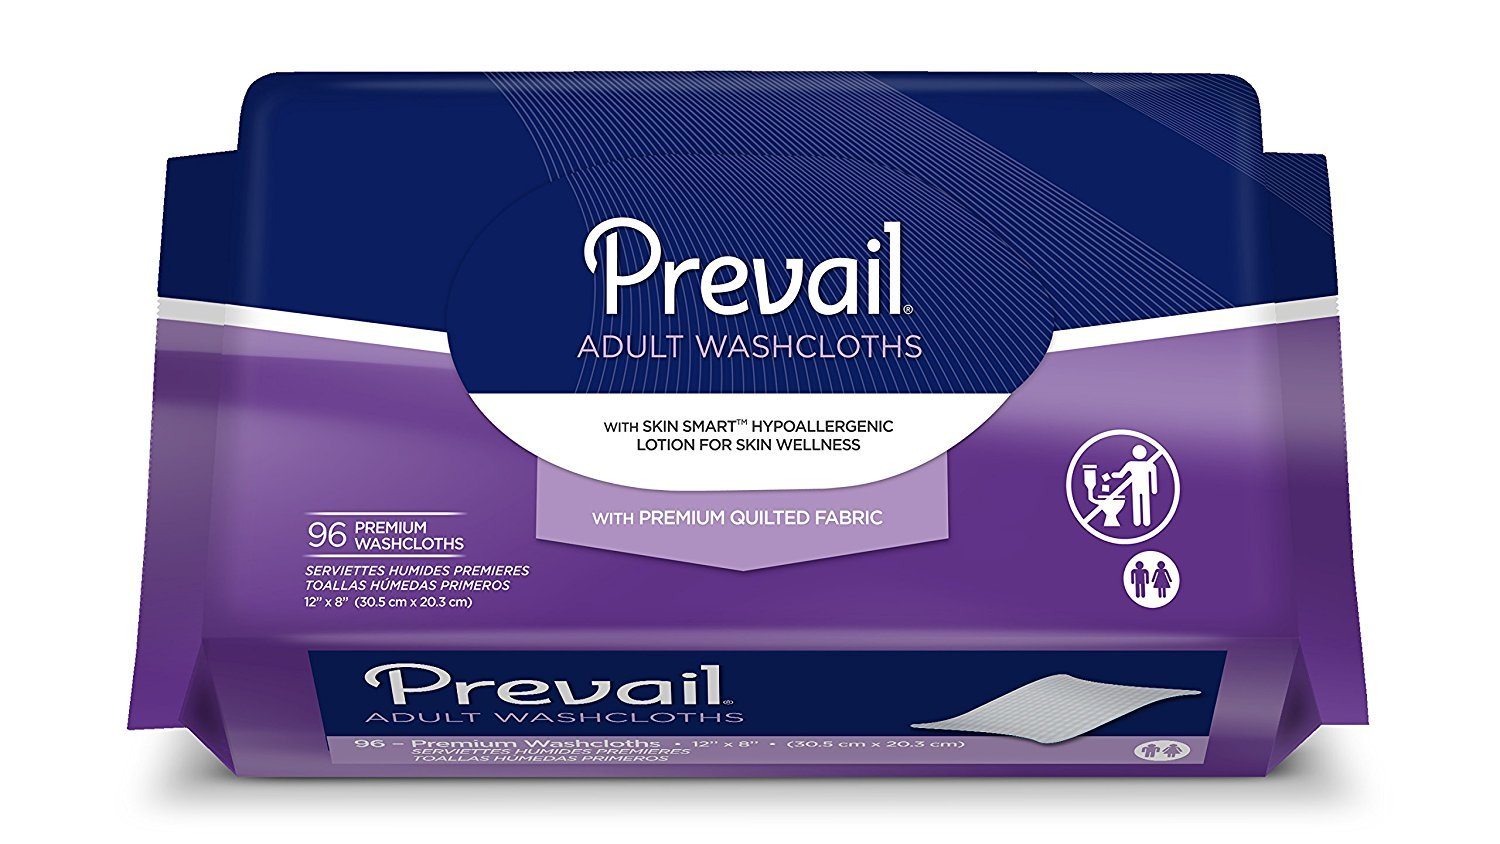 Amazon.com : Prevail Disposable Washcloths, Prevail Wshclth Ref Jumbo Pk, (1 CASE, 576 EACH) : Incontinence Cleansers And Deodorants : Beauty